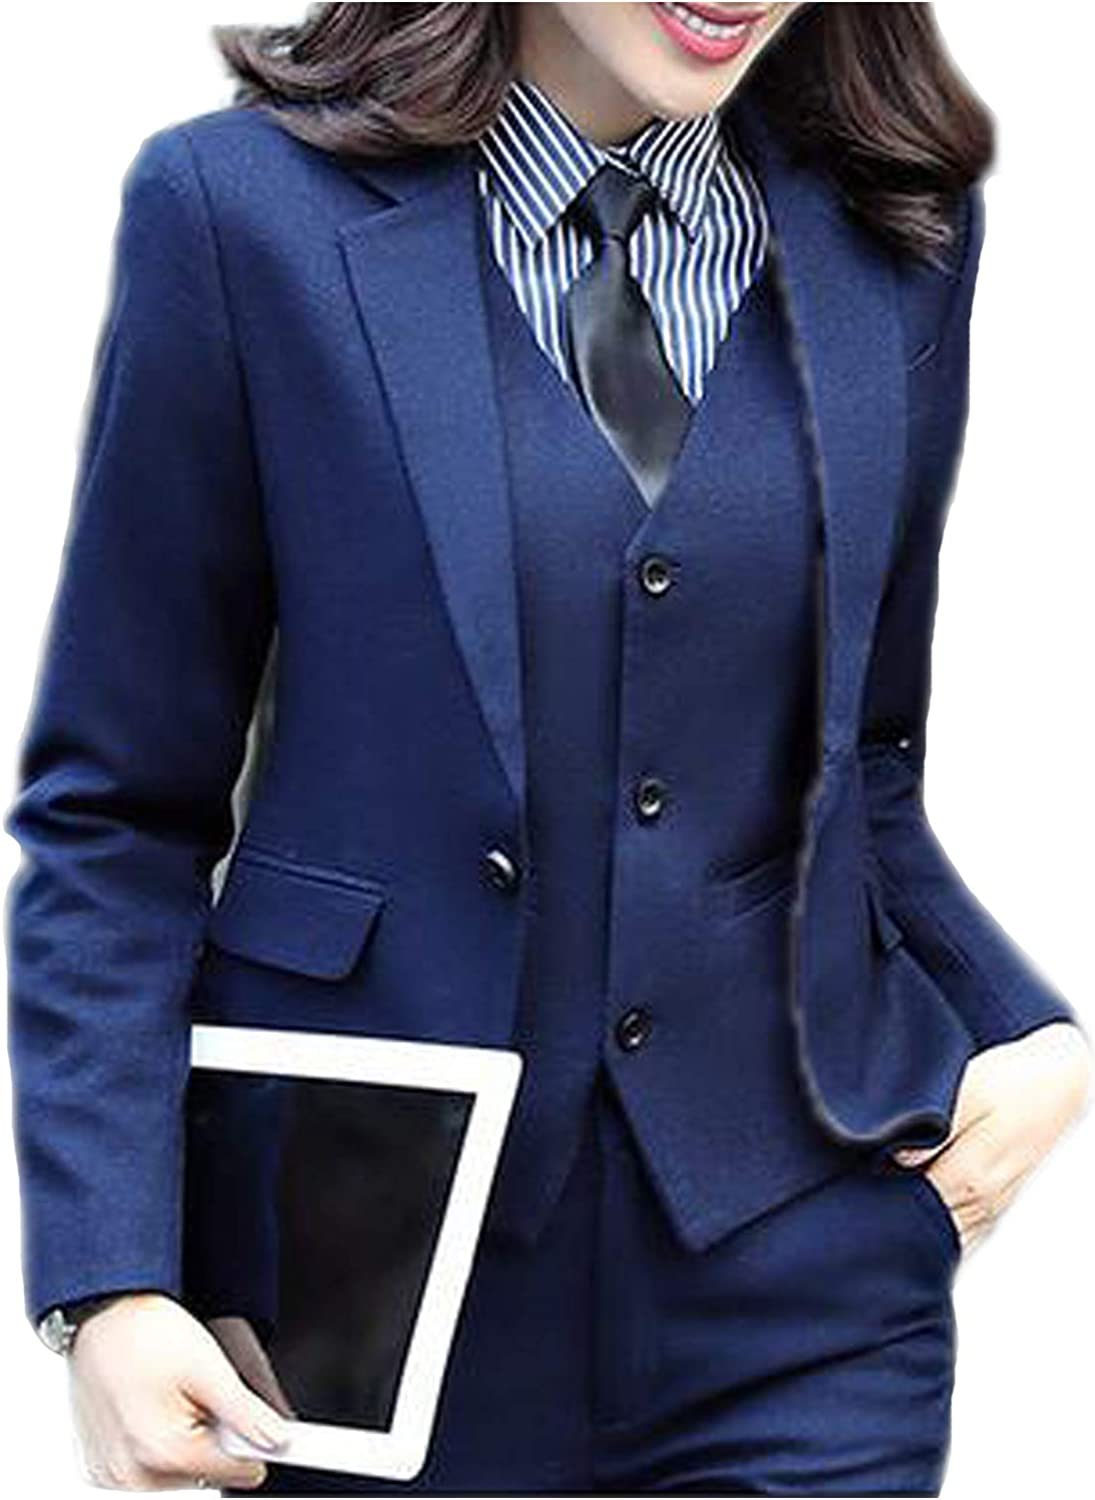 JYDress Women's 3 Piece Elegant Formal Business Lady Office Suit Set Work Wear